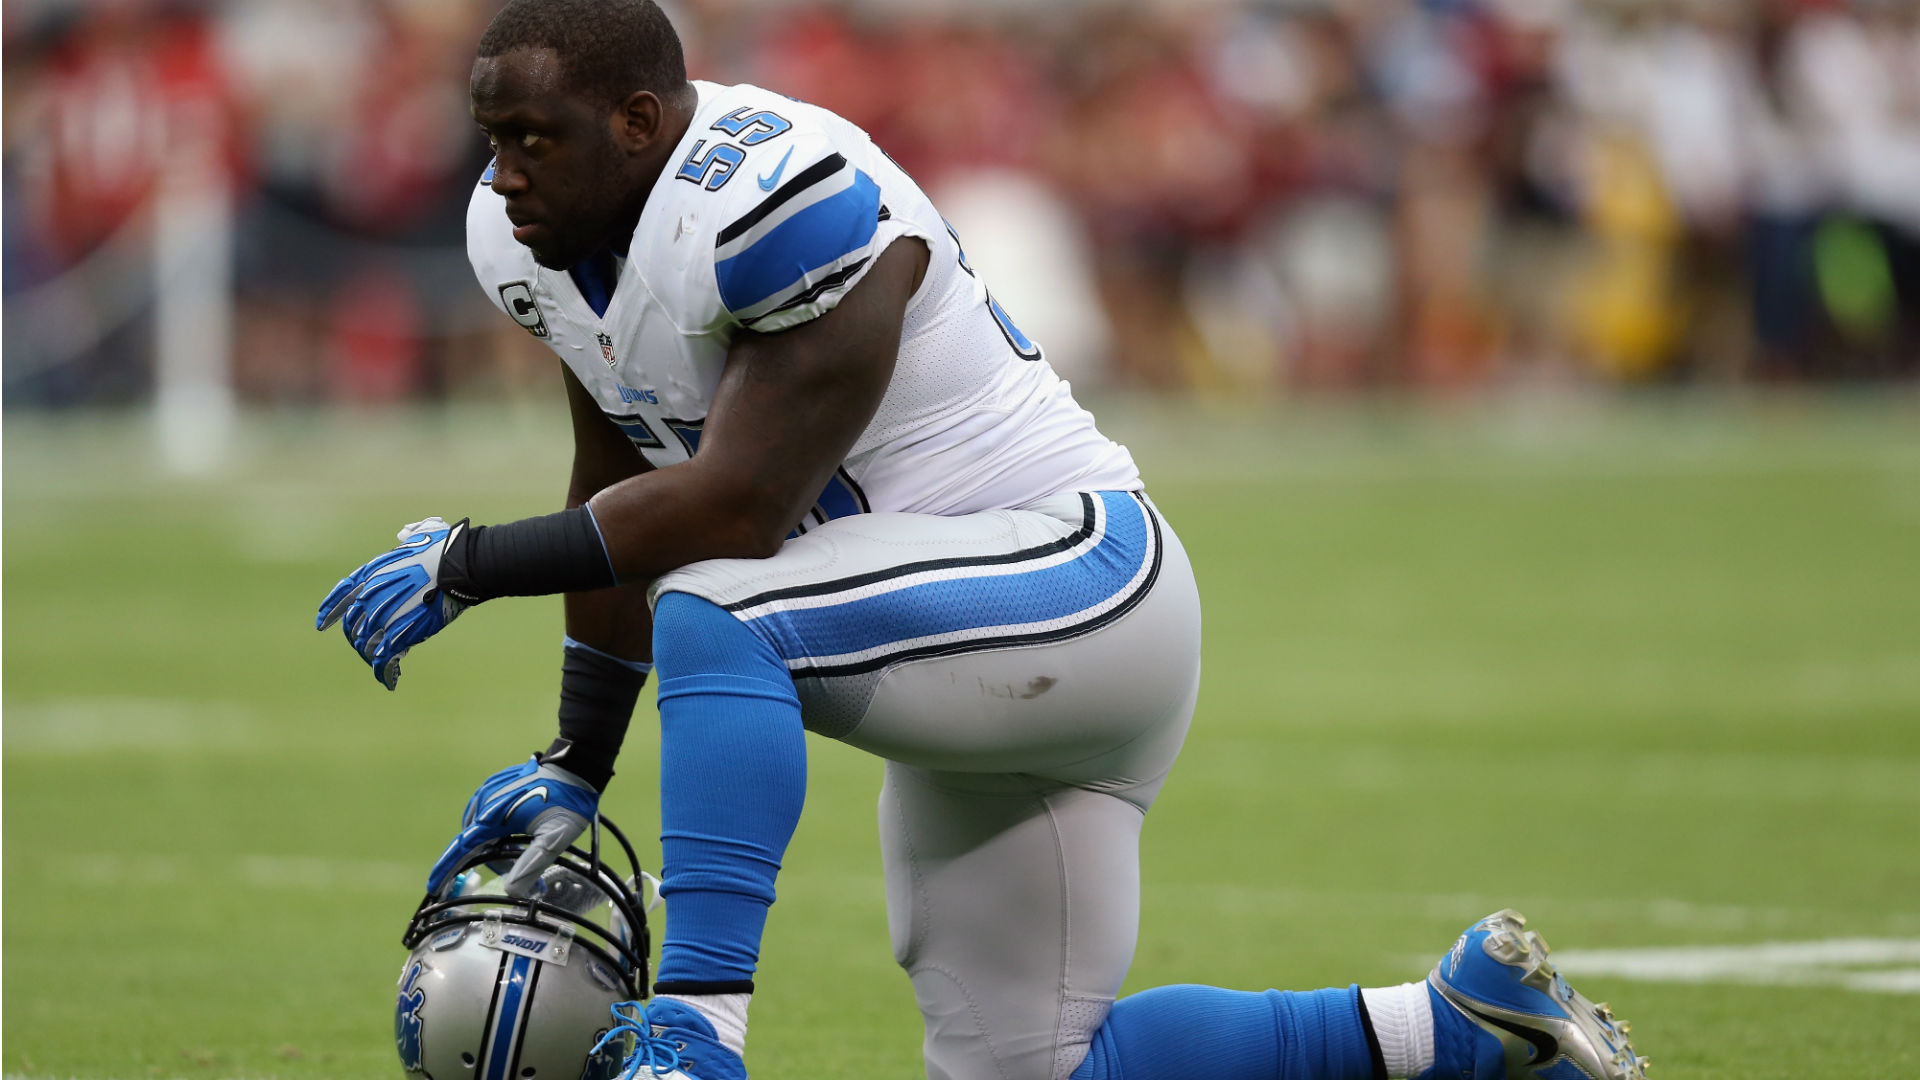 Cowboys Headlines - Stephen Tulloch Released; Could Dallas Come Calling For LB?